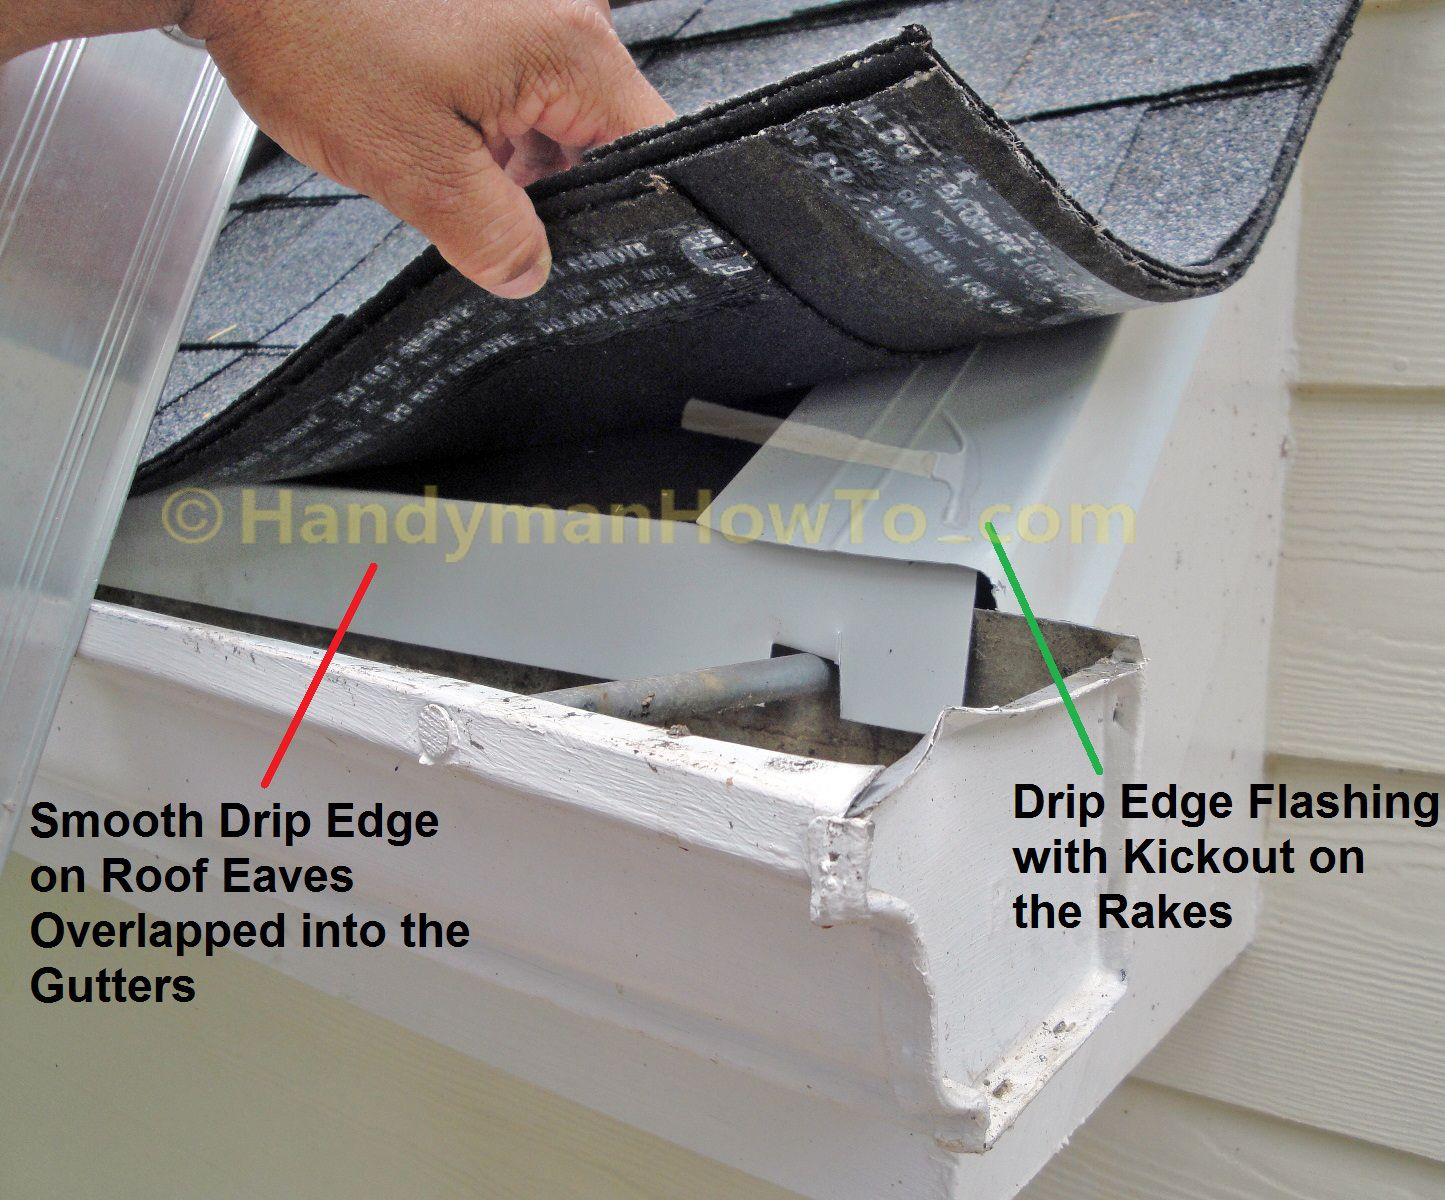 Replace fascia boards in sections - Drip Edge Flashing Is Installed On The Roof Eaves And Rakes To Protect The Fascia Board And To Cover The Carpenter S Gap Between The Roof Deck And Fascia